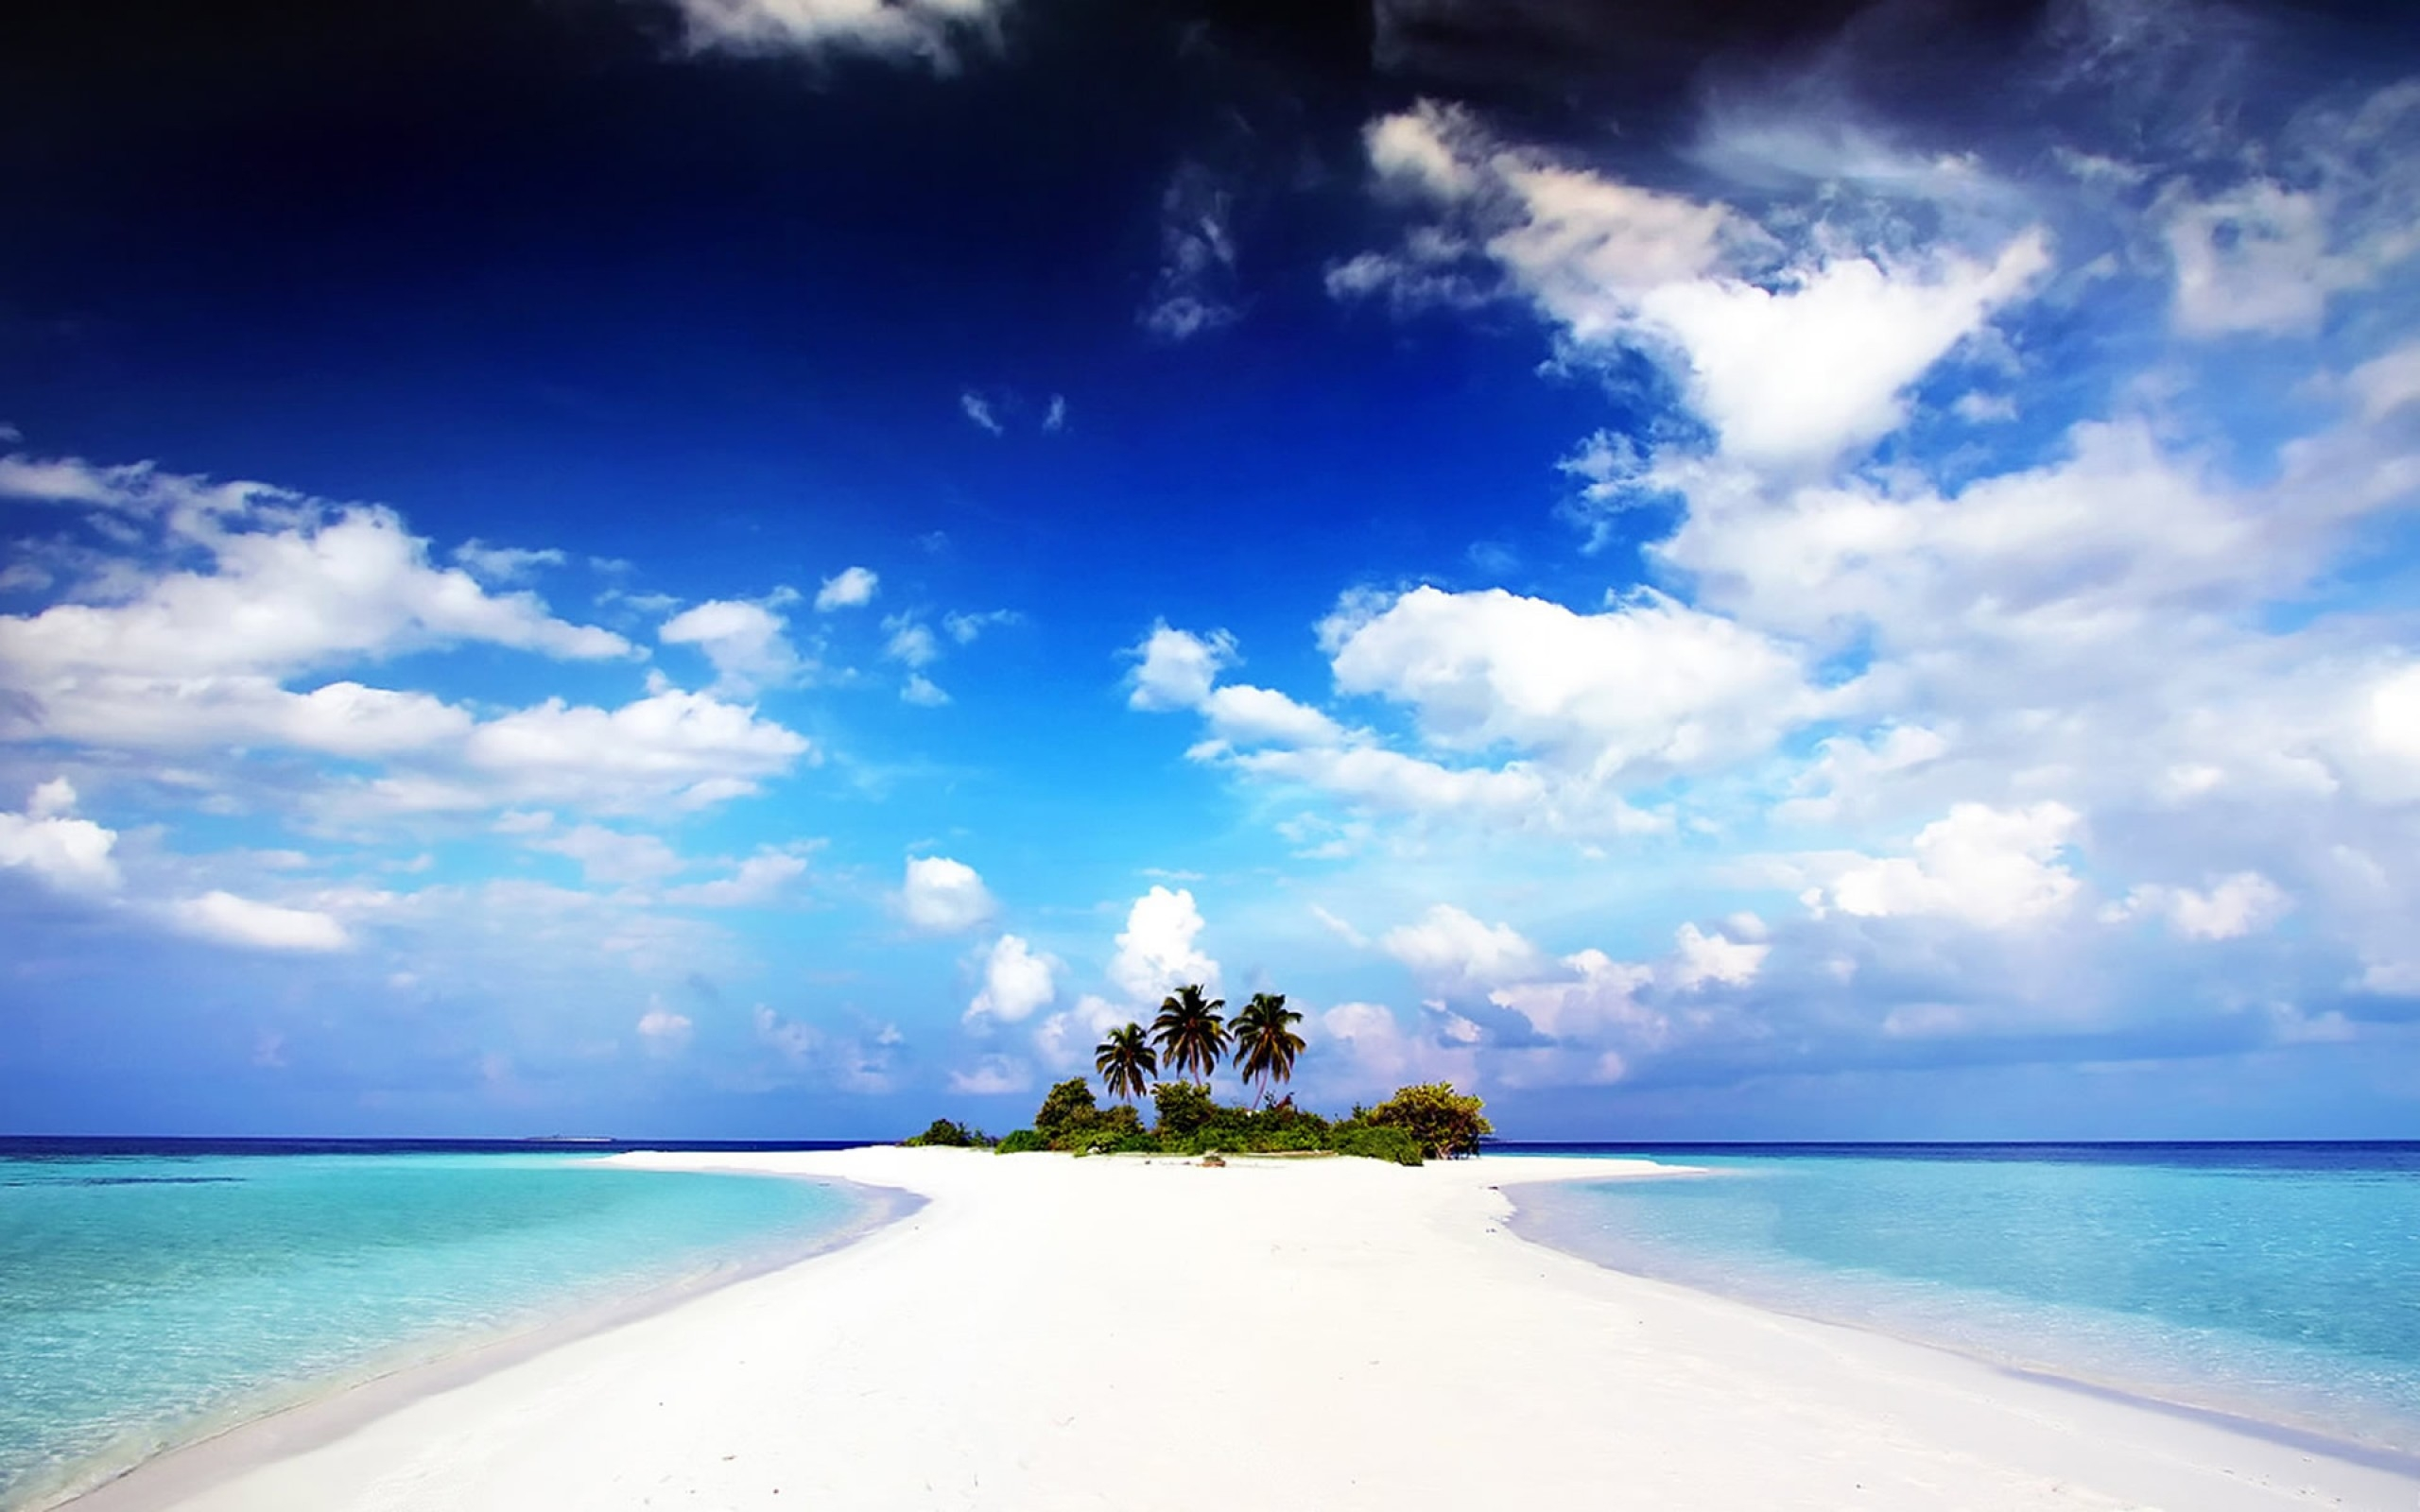 Hd Tropical Island Beach Paradise Wallpapers And Backgrounds: Maldives Wallpapers